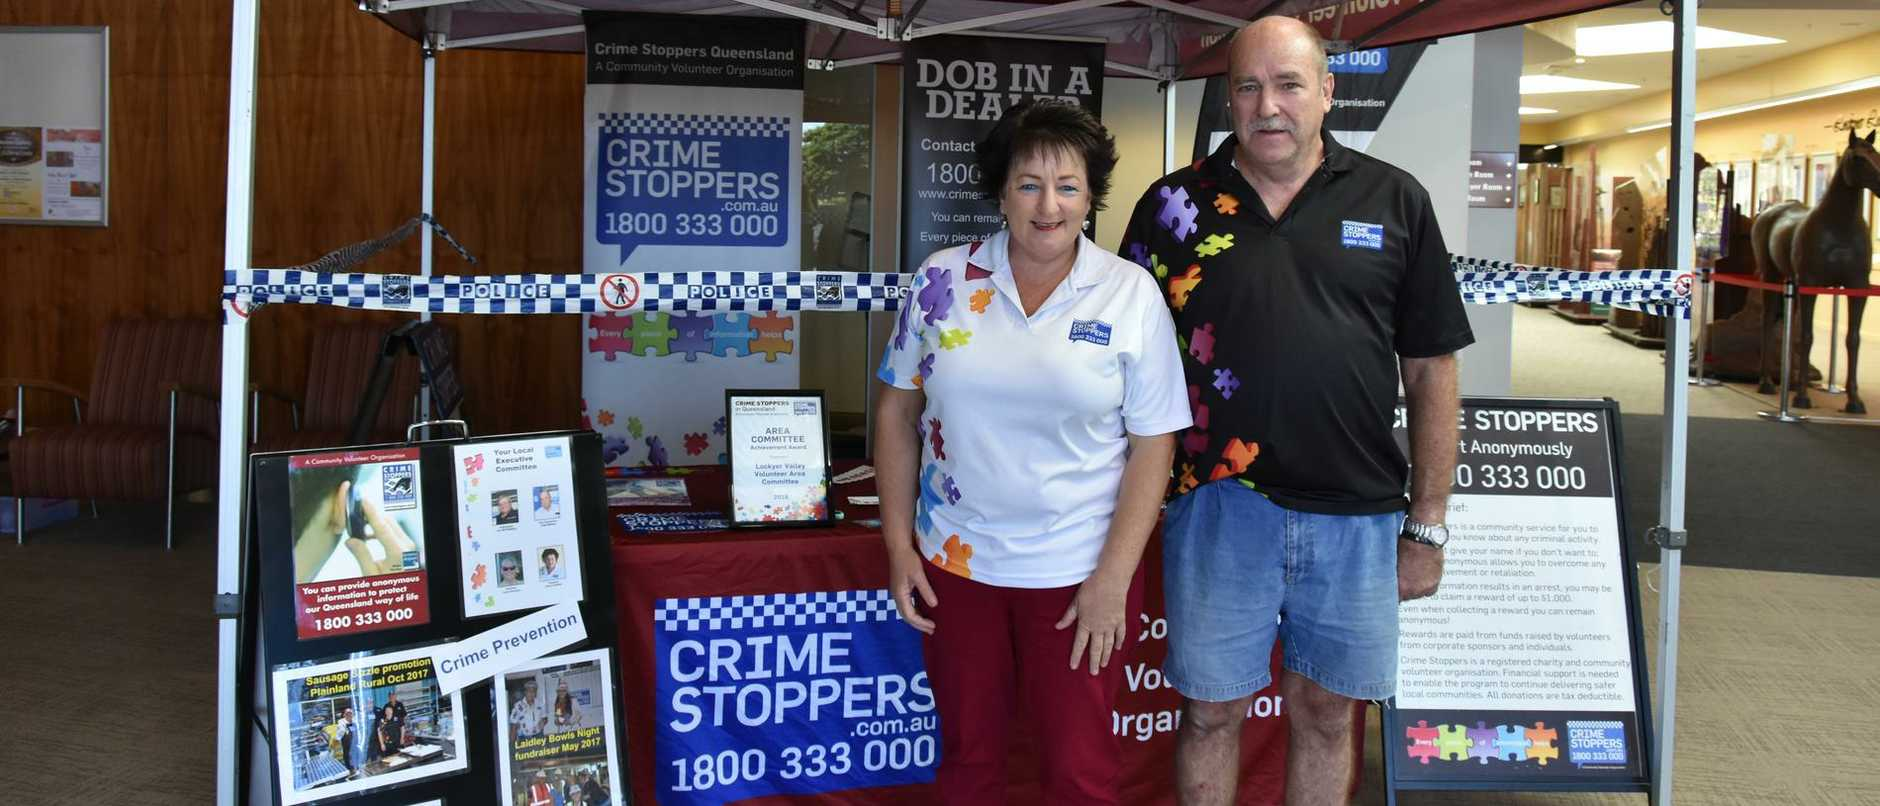 Greg Steffens and Janice Holstein at the stand the committee set up in preparation for National Crimestoppers Day at the Lockyer Valley Cultural Centre.